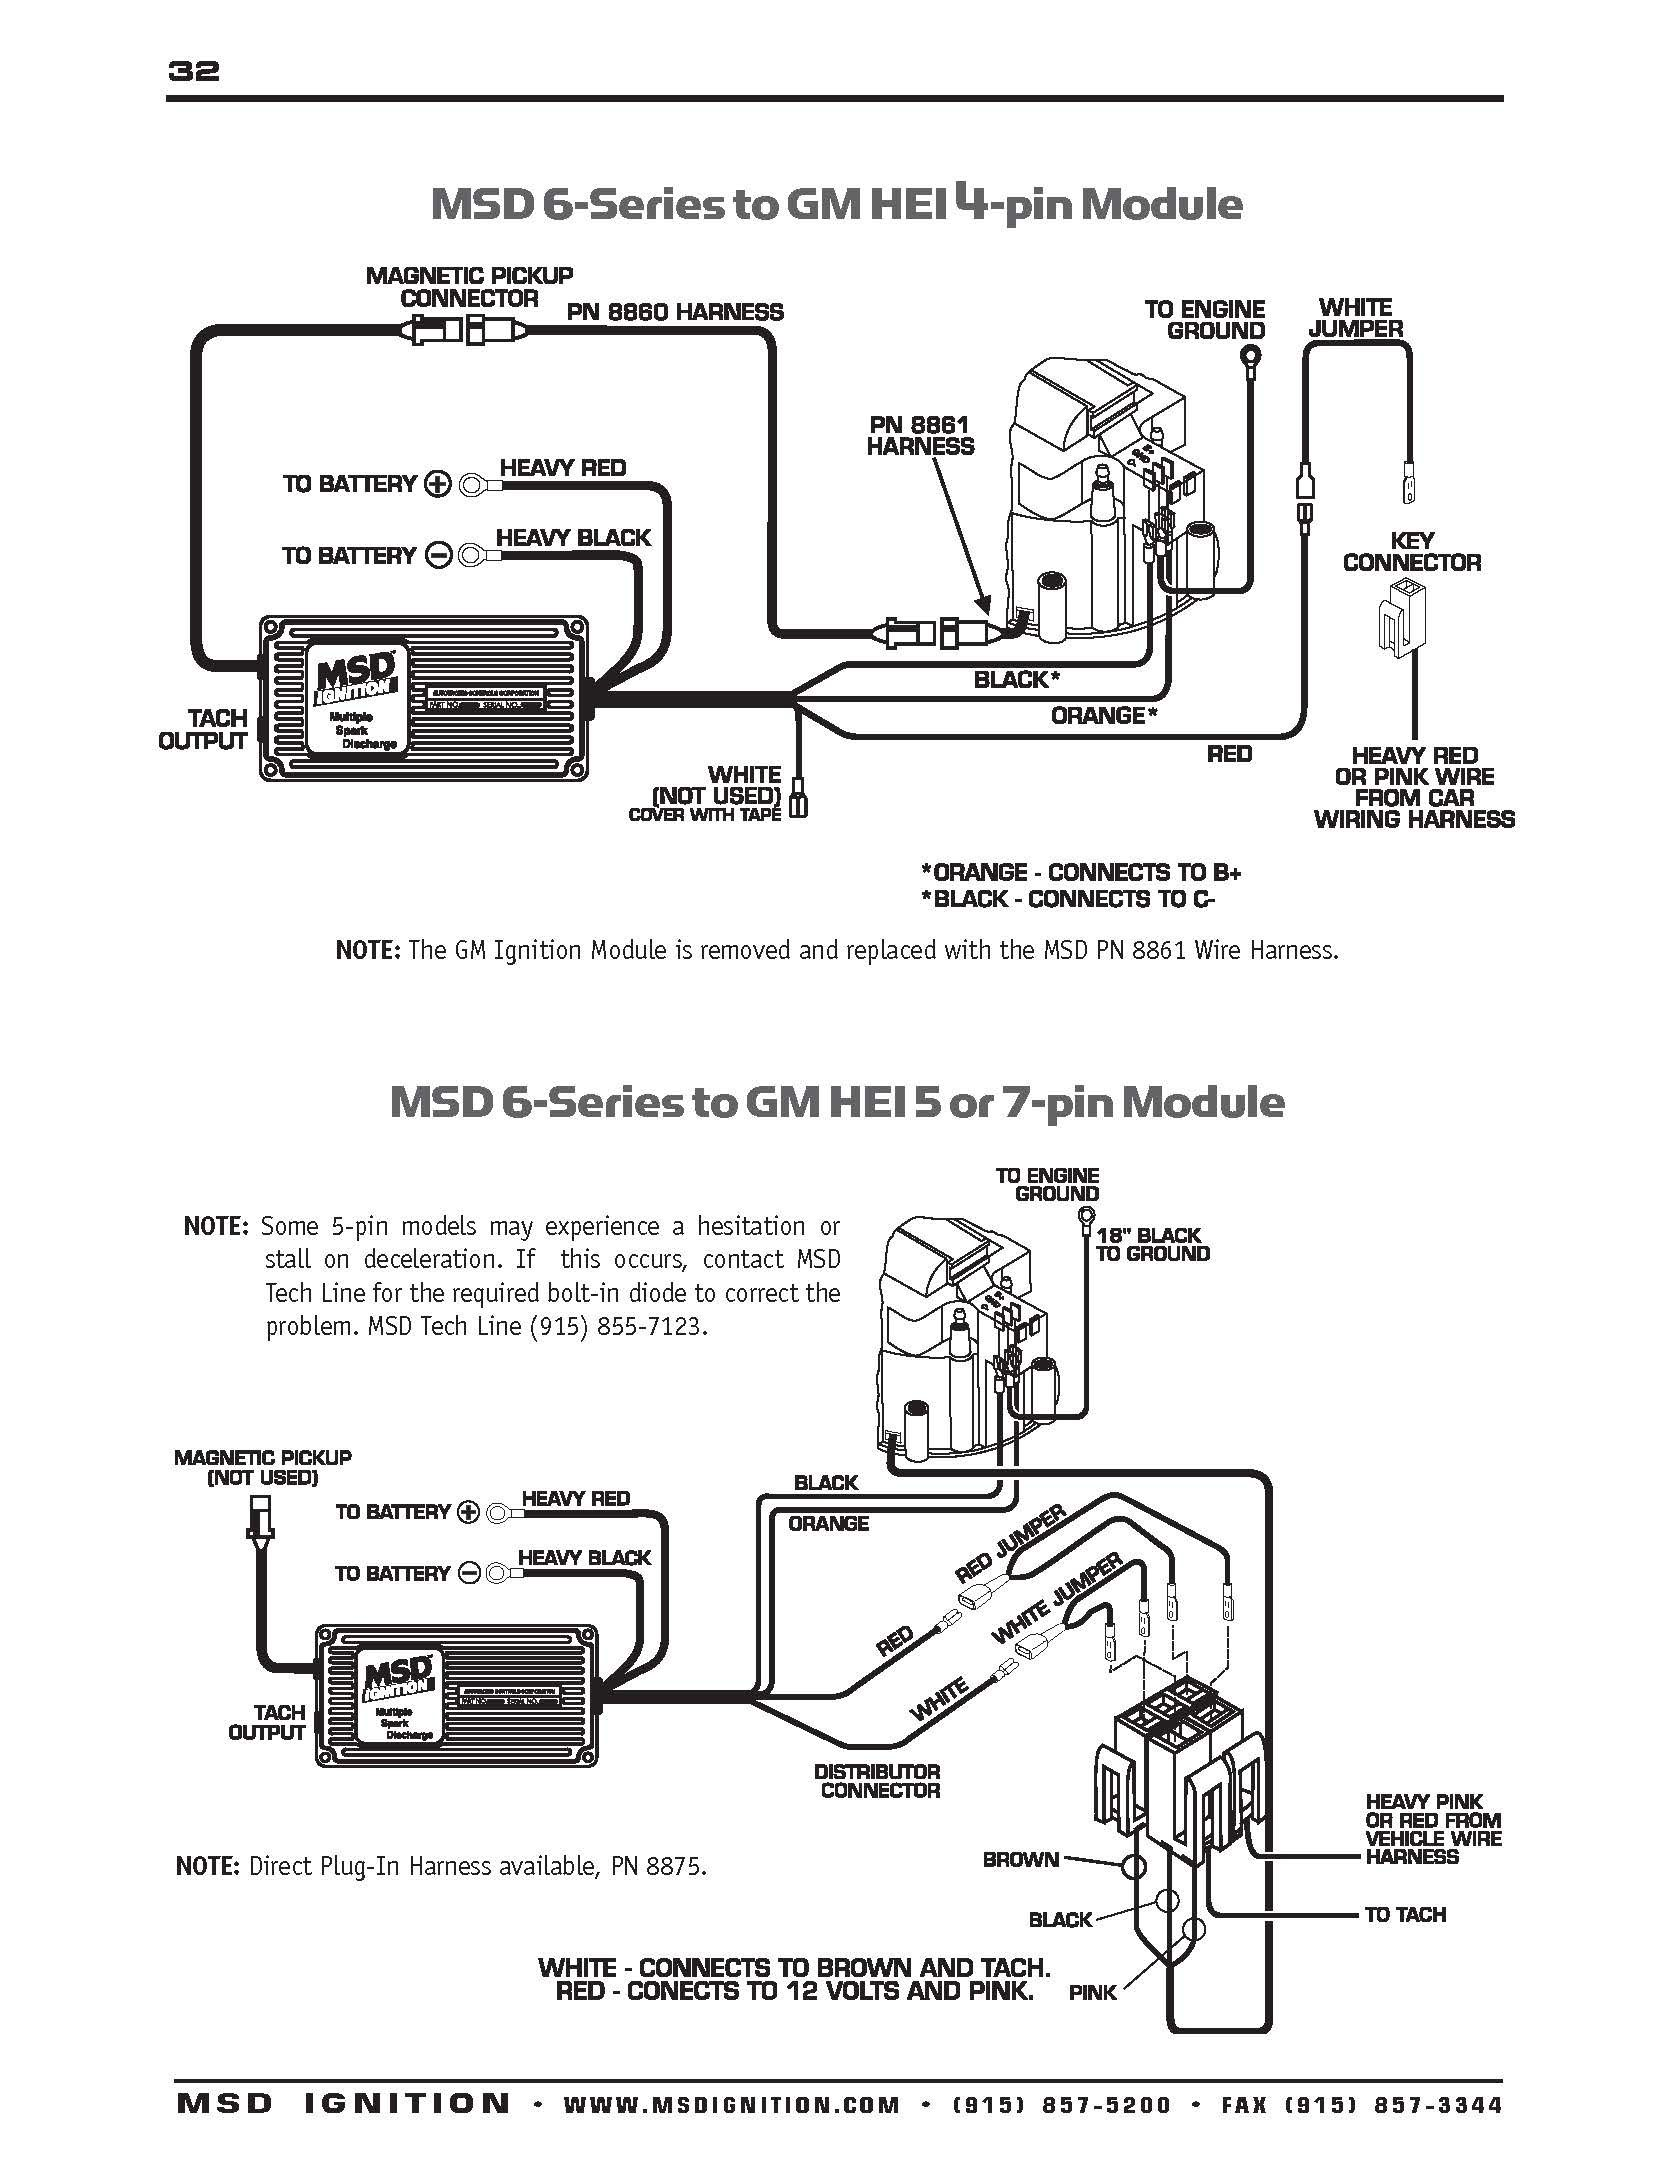 vw msd ignition wiring diagram wiring diagram showmsd ignition wiring diagrams 1966 chevelle diagram automotive [ 1675 x 2175 Pixel ]